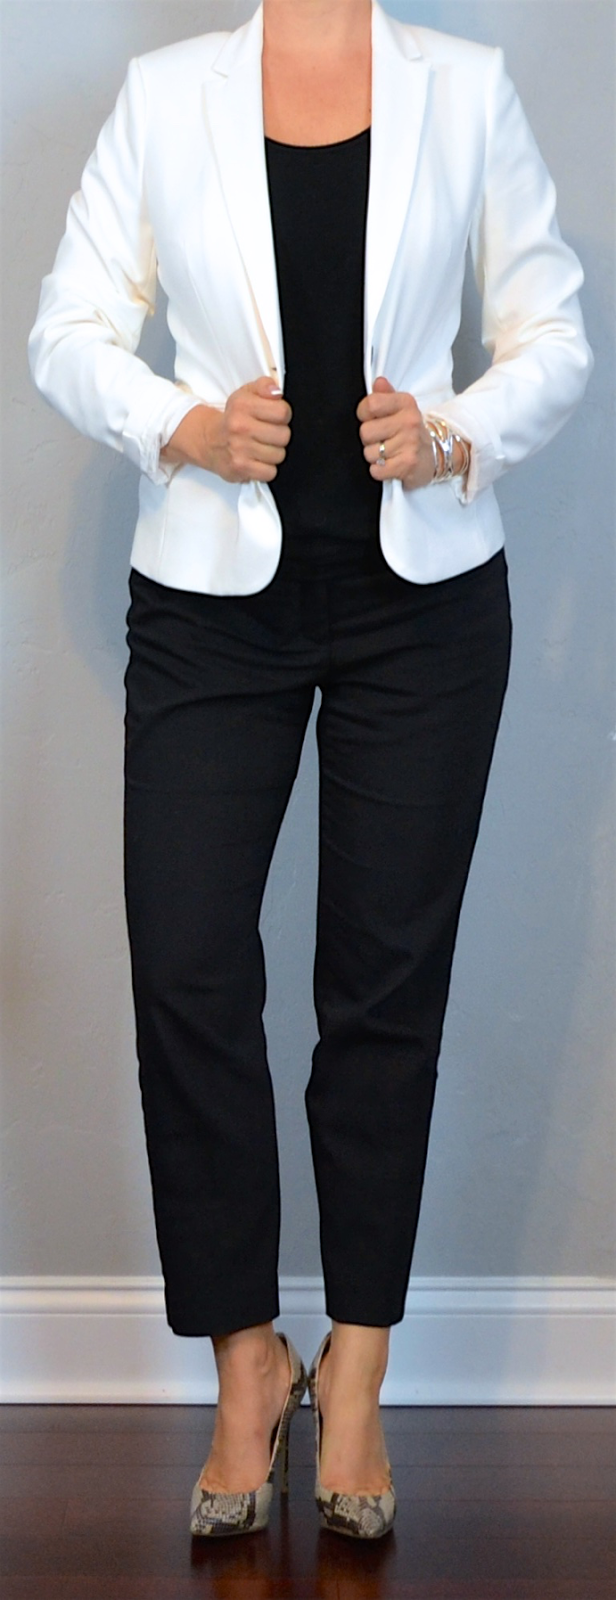 Elliott Lauren designs for the woman who seeks on-trend pieces without compromising on quality and fit. These everyday black pants have a simple, versatile pull-on style with a flat elastic waistband. Thanks to the slim fitting stretch composition, the pants fit close, while maintaining a lean silhouette. Named the